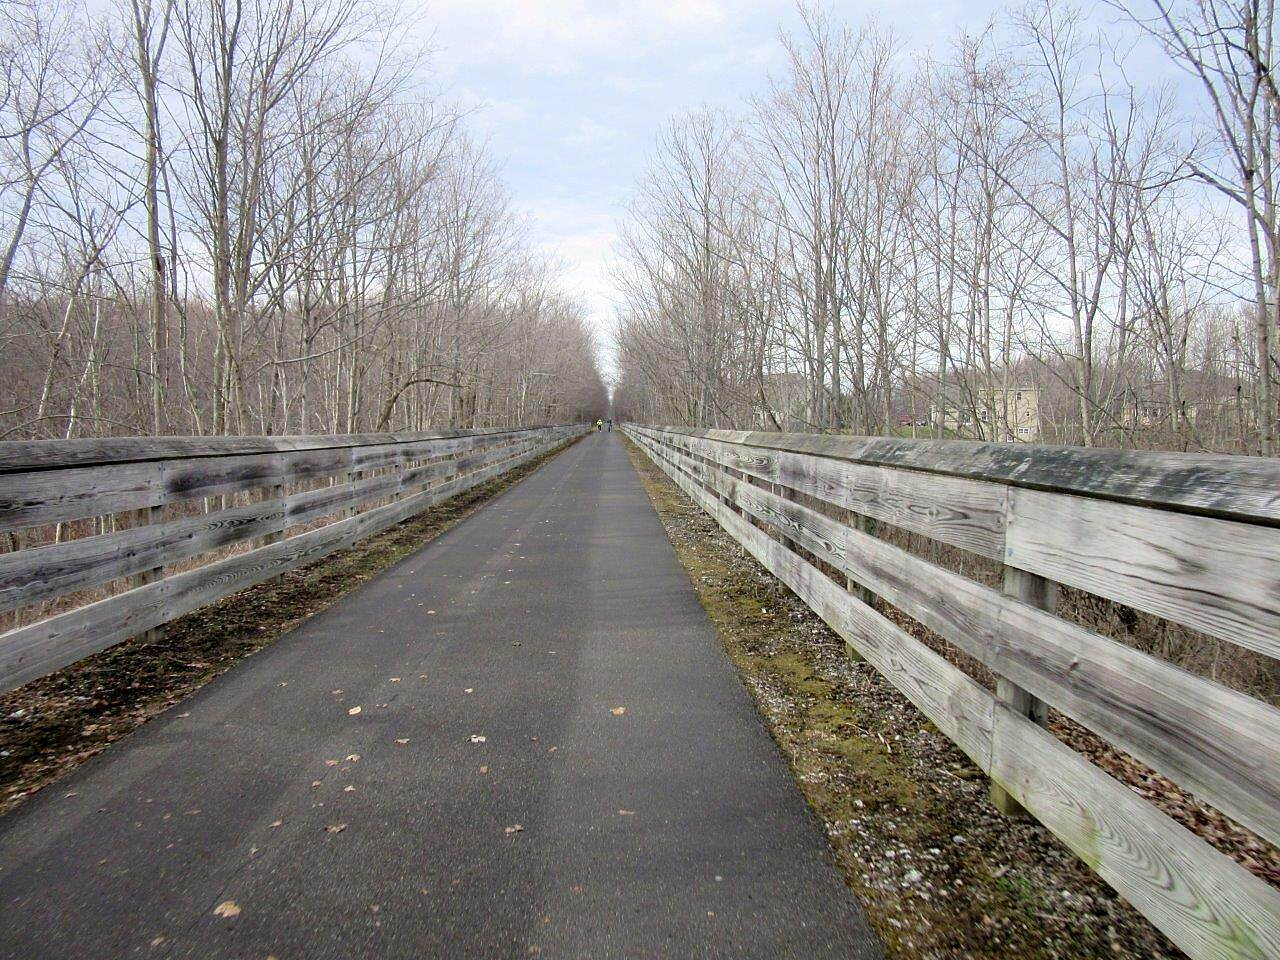 MetroParks Bikeway No greenery Not much greenery this time of the year-March 2016.  But it will be pretty soon!